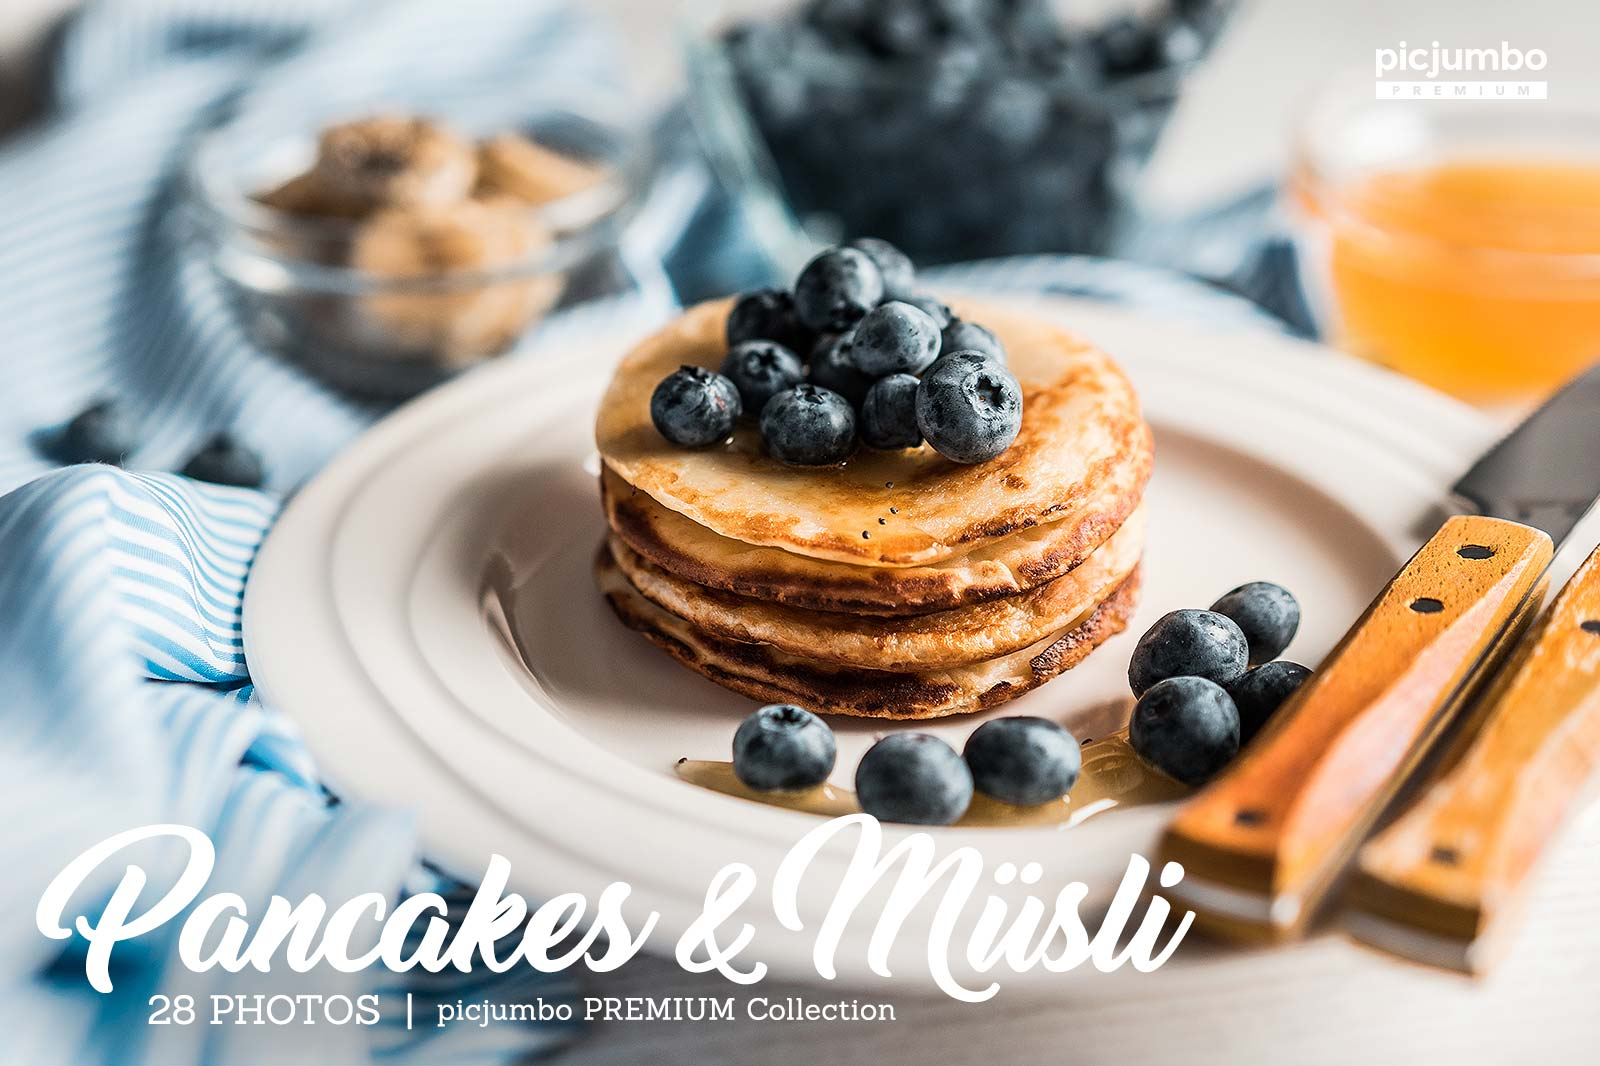 pancakes-stock-photo-collection-picjumbo-premium.jpg